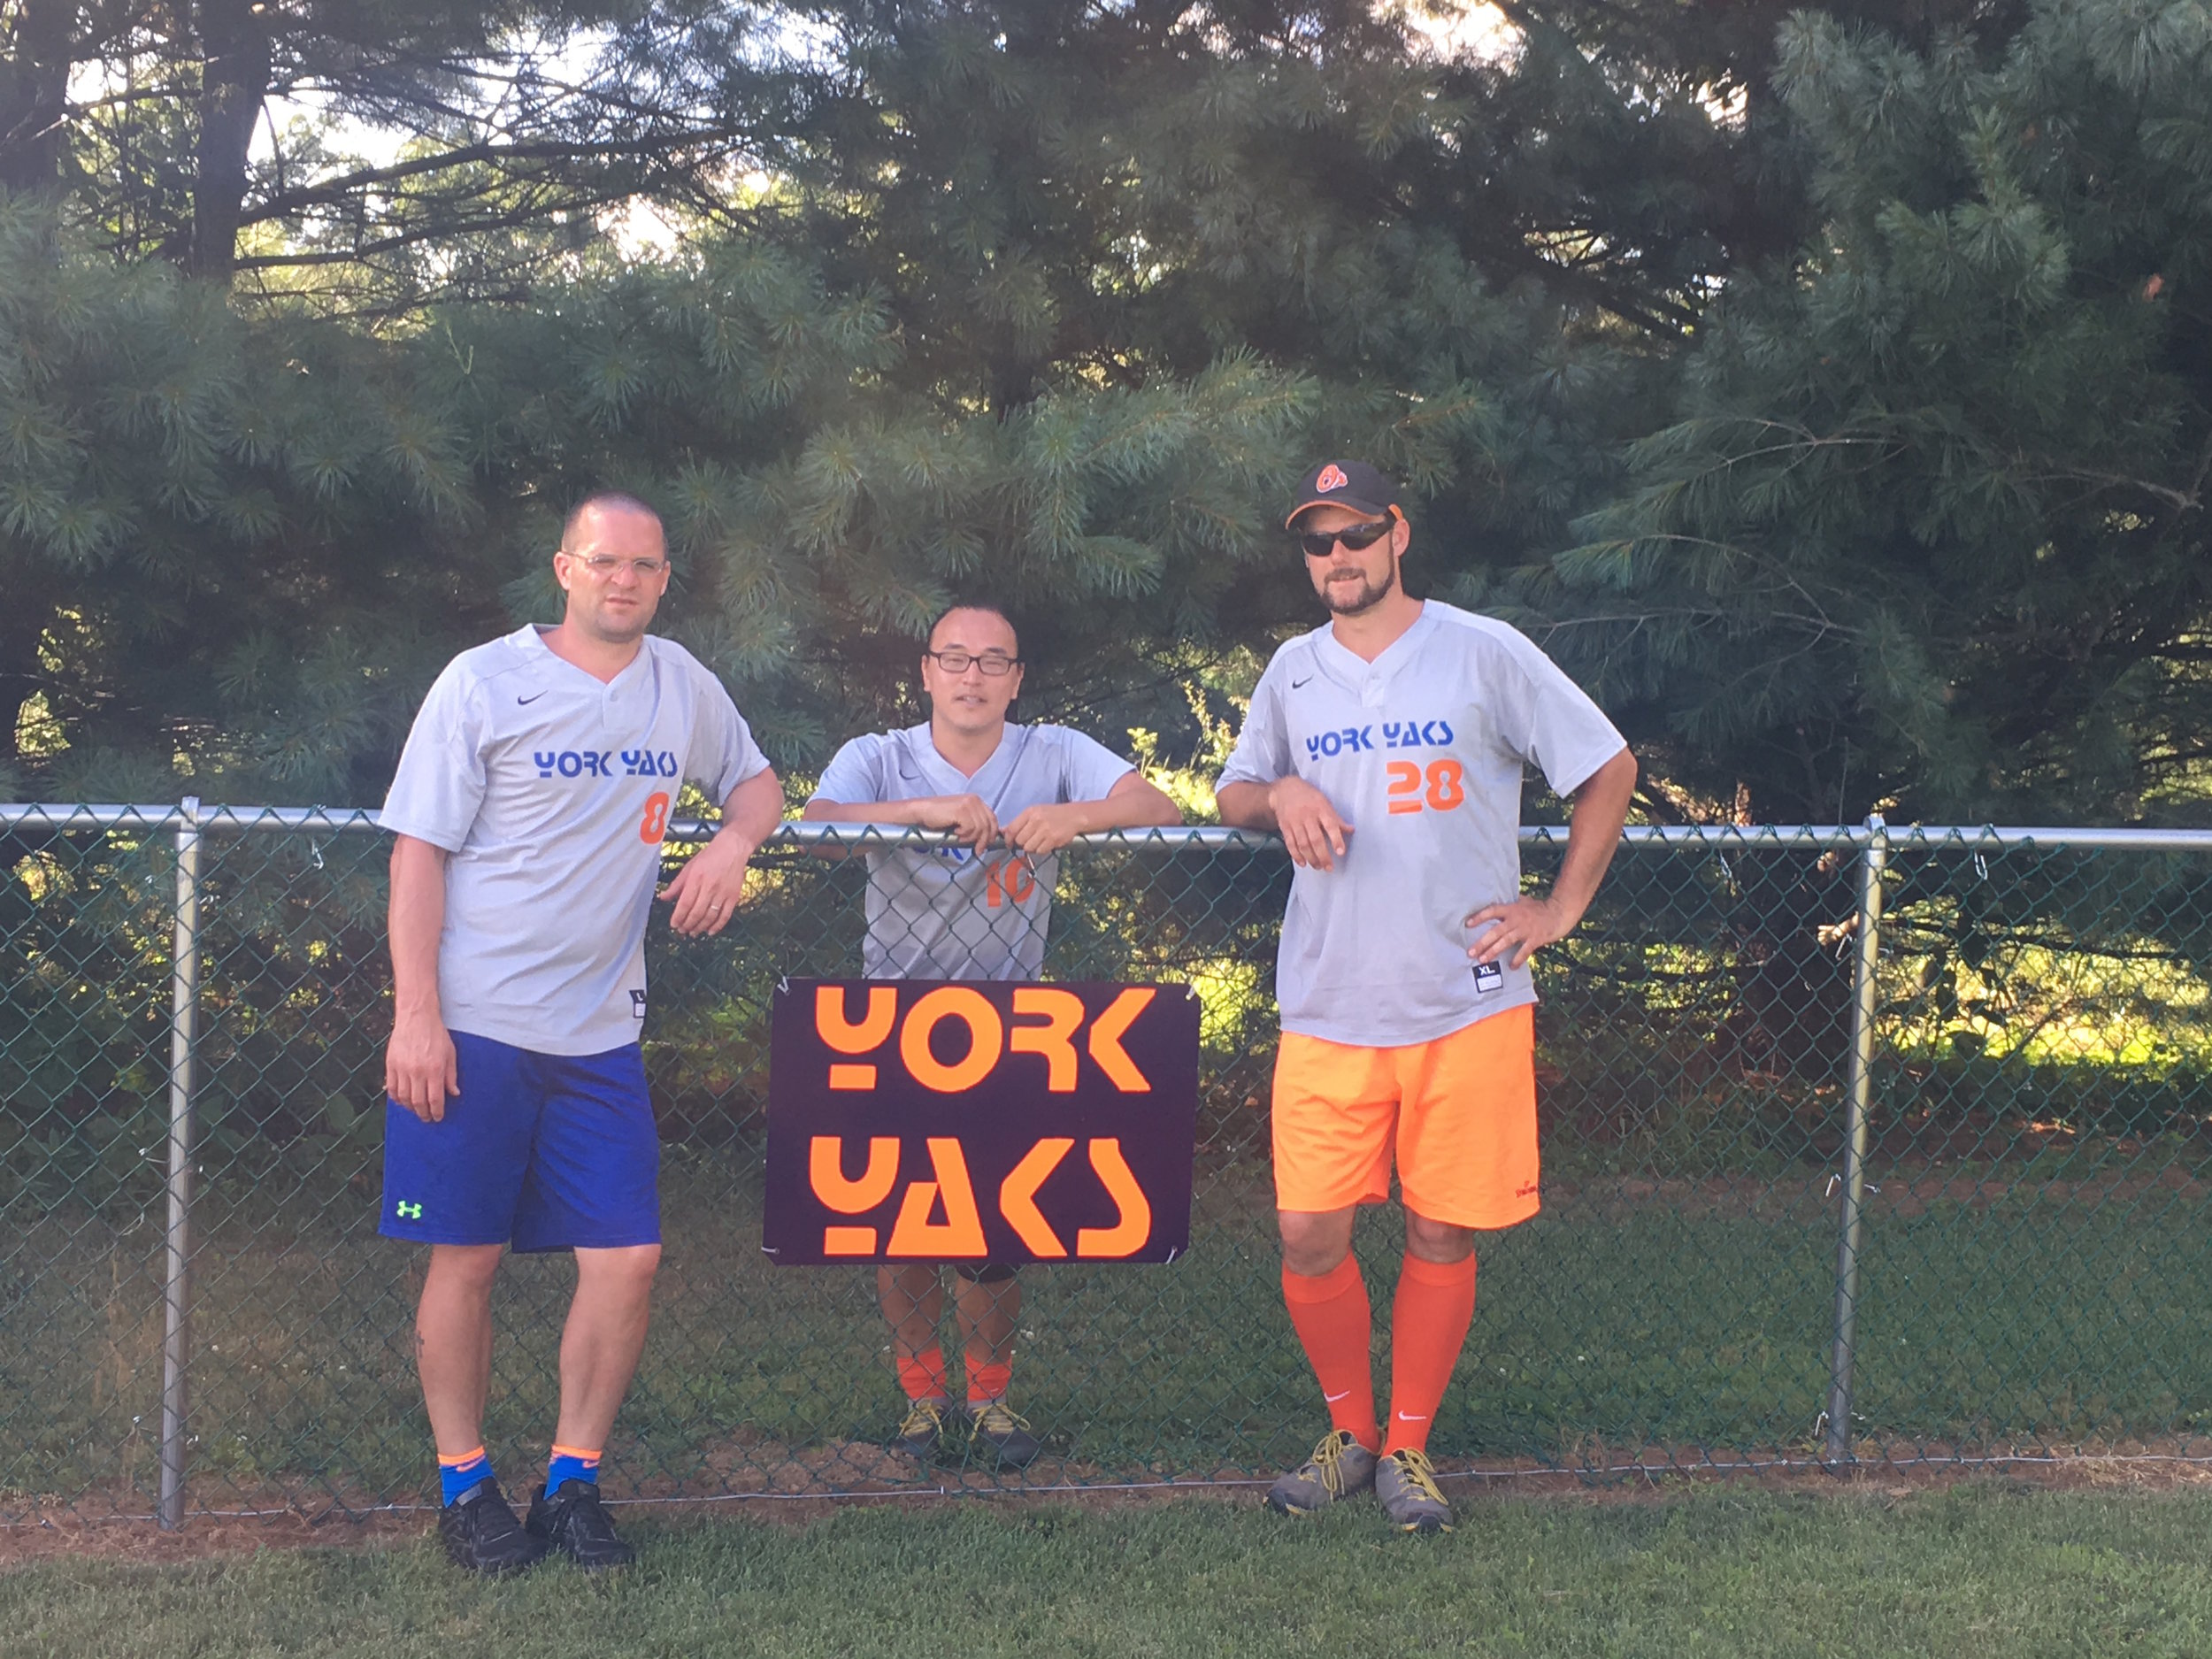 The York Yaks took home 1st place, 6 points towards the post season tournament, and $500 with their impressive tournament victory. (L:R Doug Wise, Dan Potter, Jarod Bull).